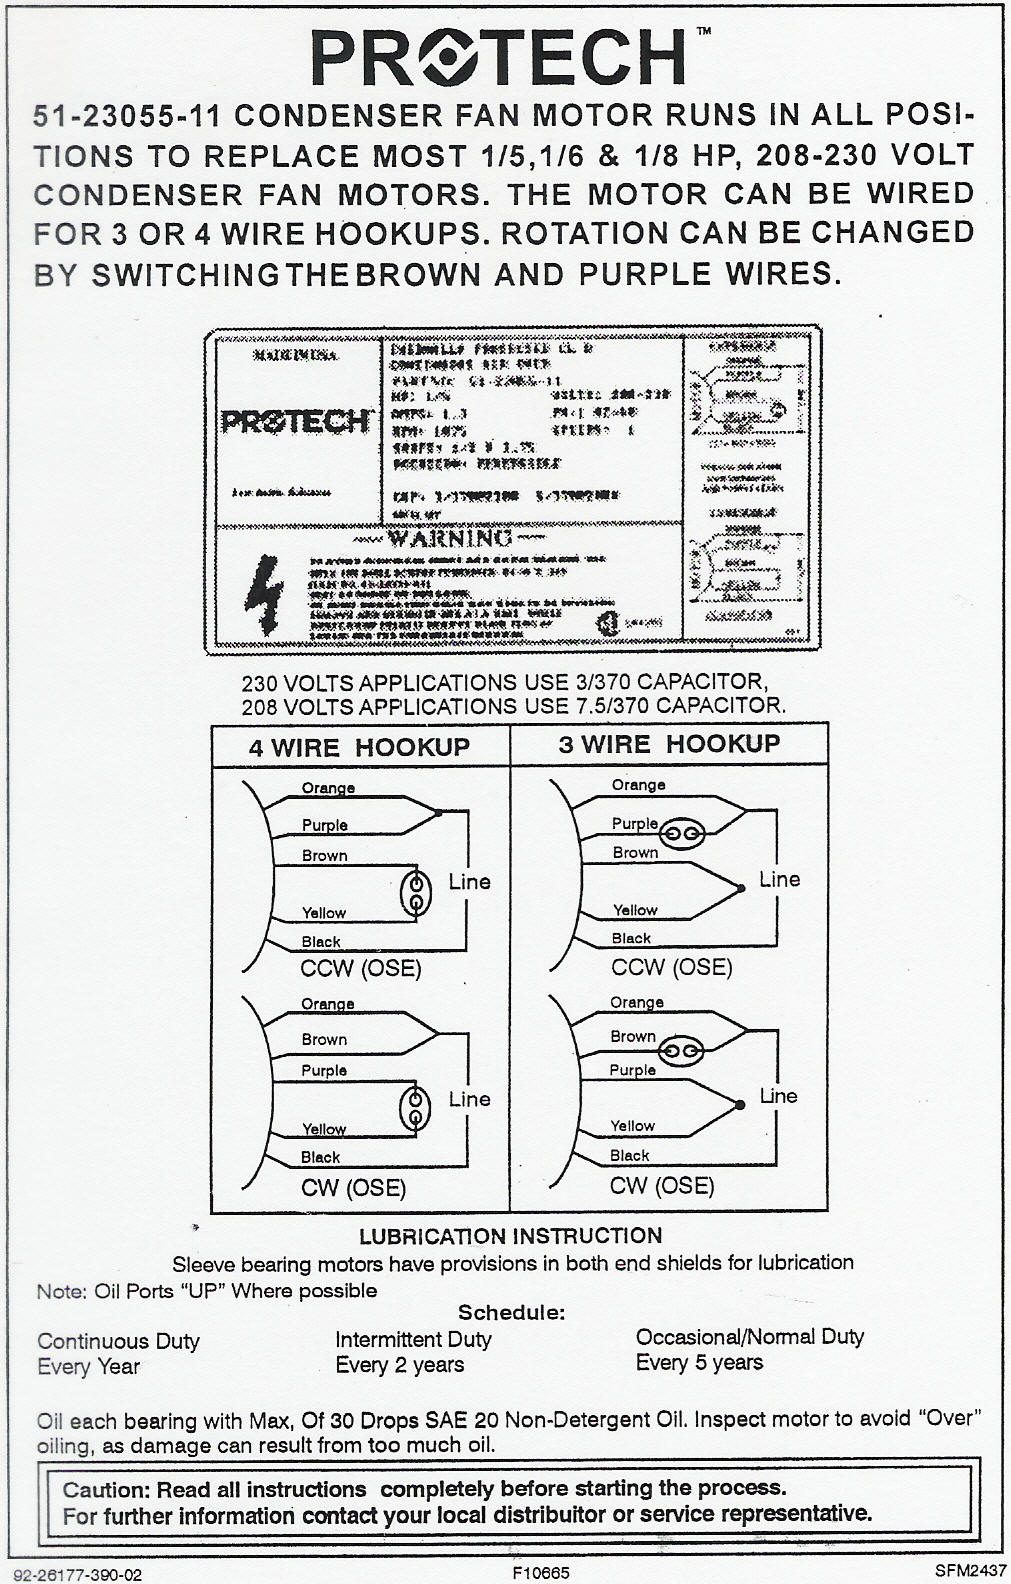 51 23055 11 wiring diagram rheem ruud condenser fan motor 51 23055 11 wiring diagram tempstar 2200 air conditioner wiring diagram at bakdesigns.co